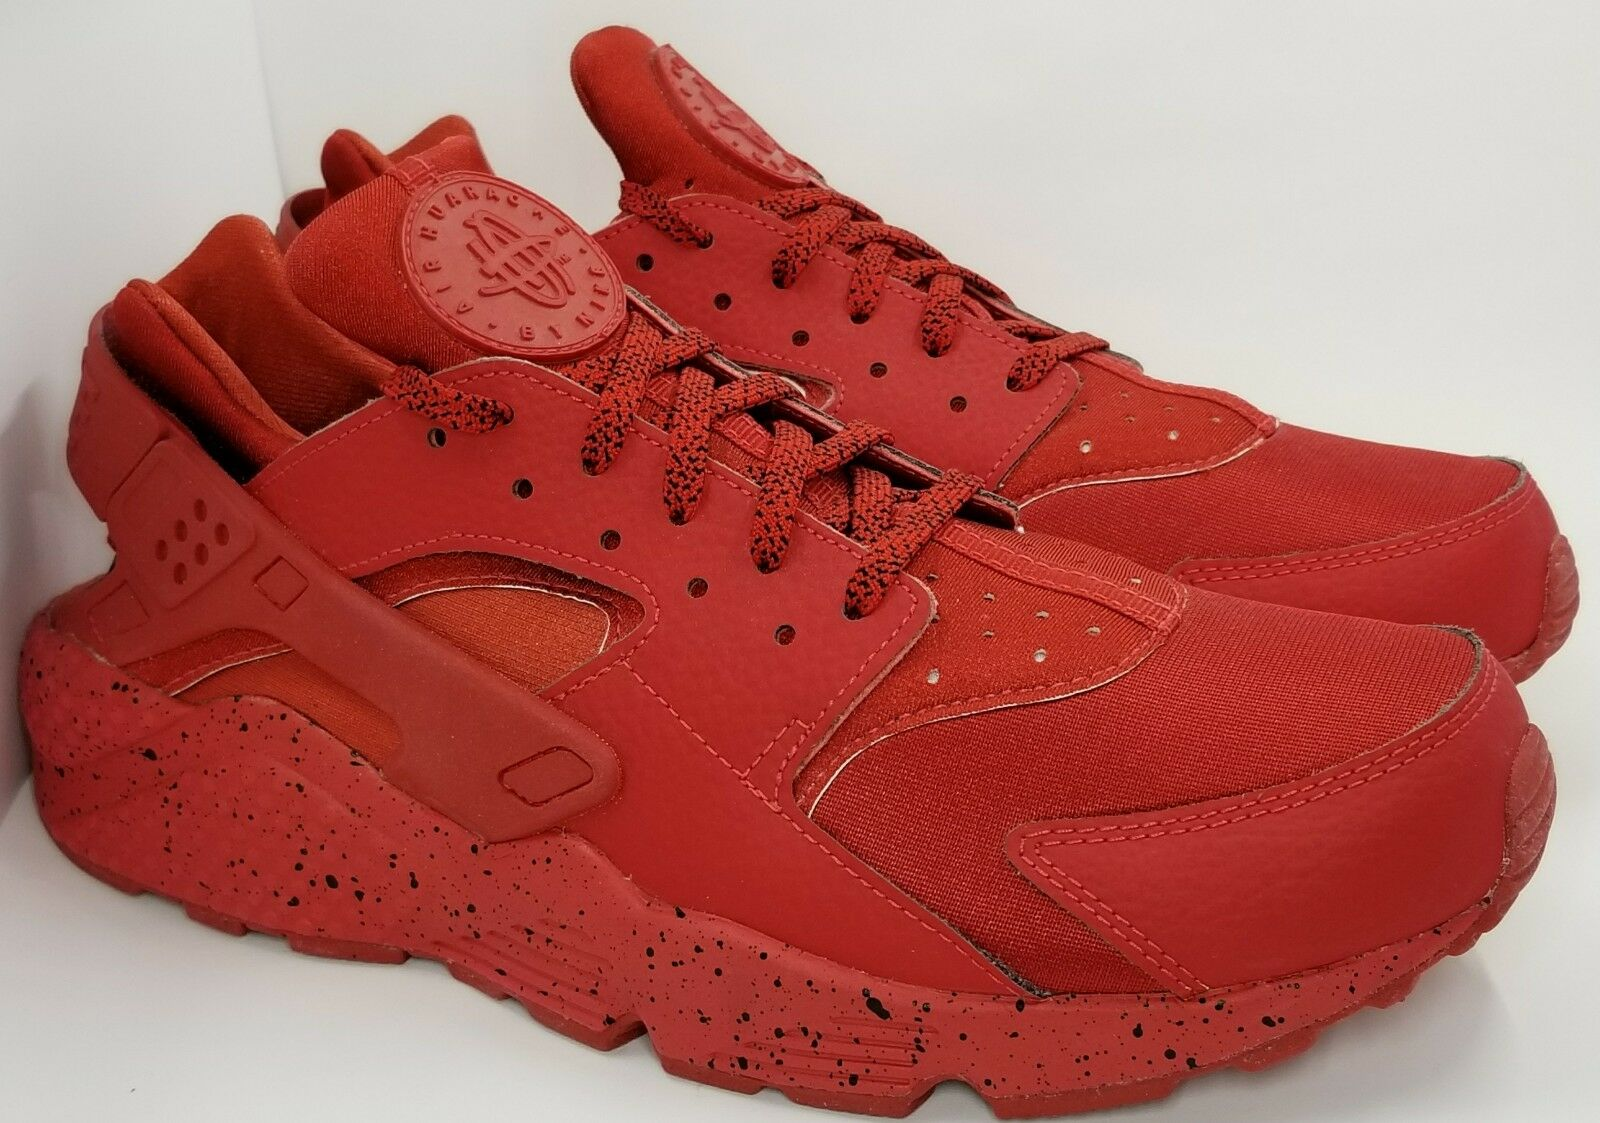 nike air rouge huarache id l'octobre rouge air taille 10 777330-982 131d52